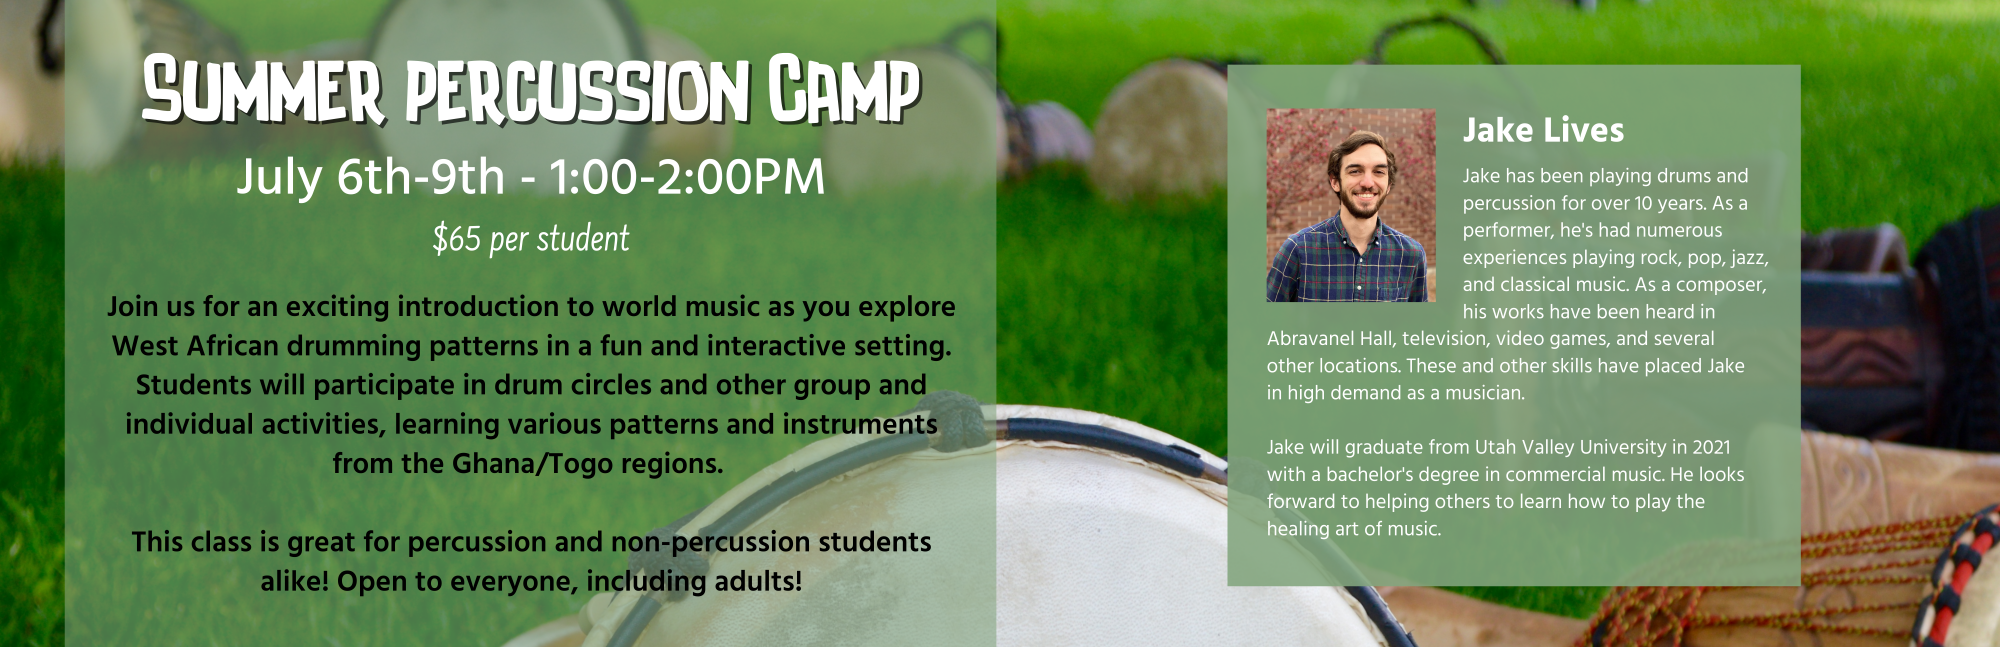 Summer Percussion Camp